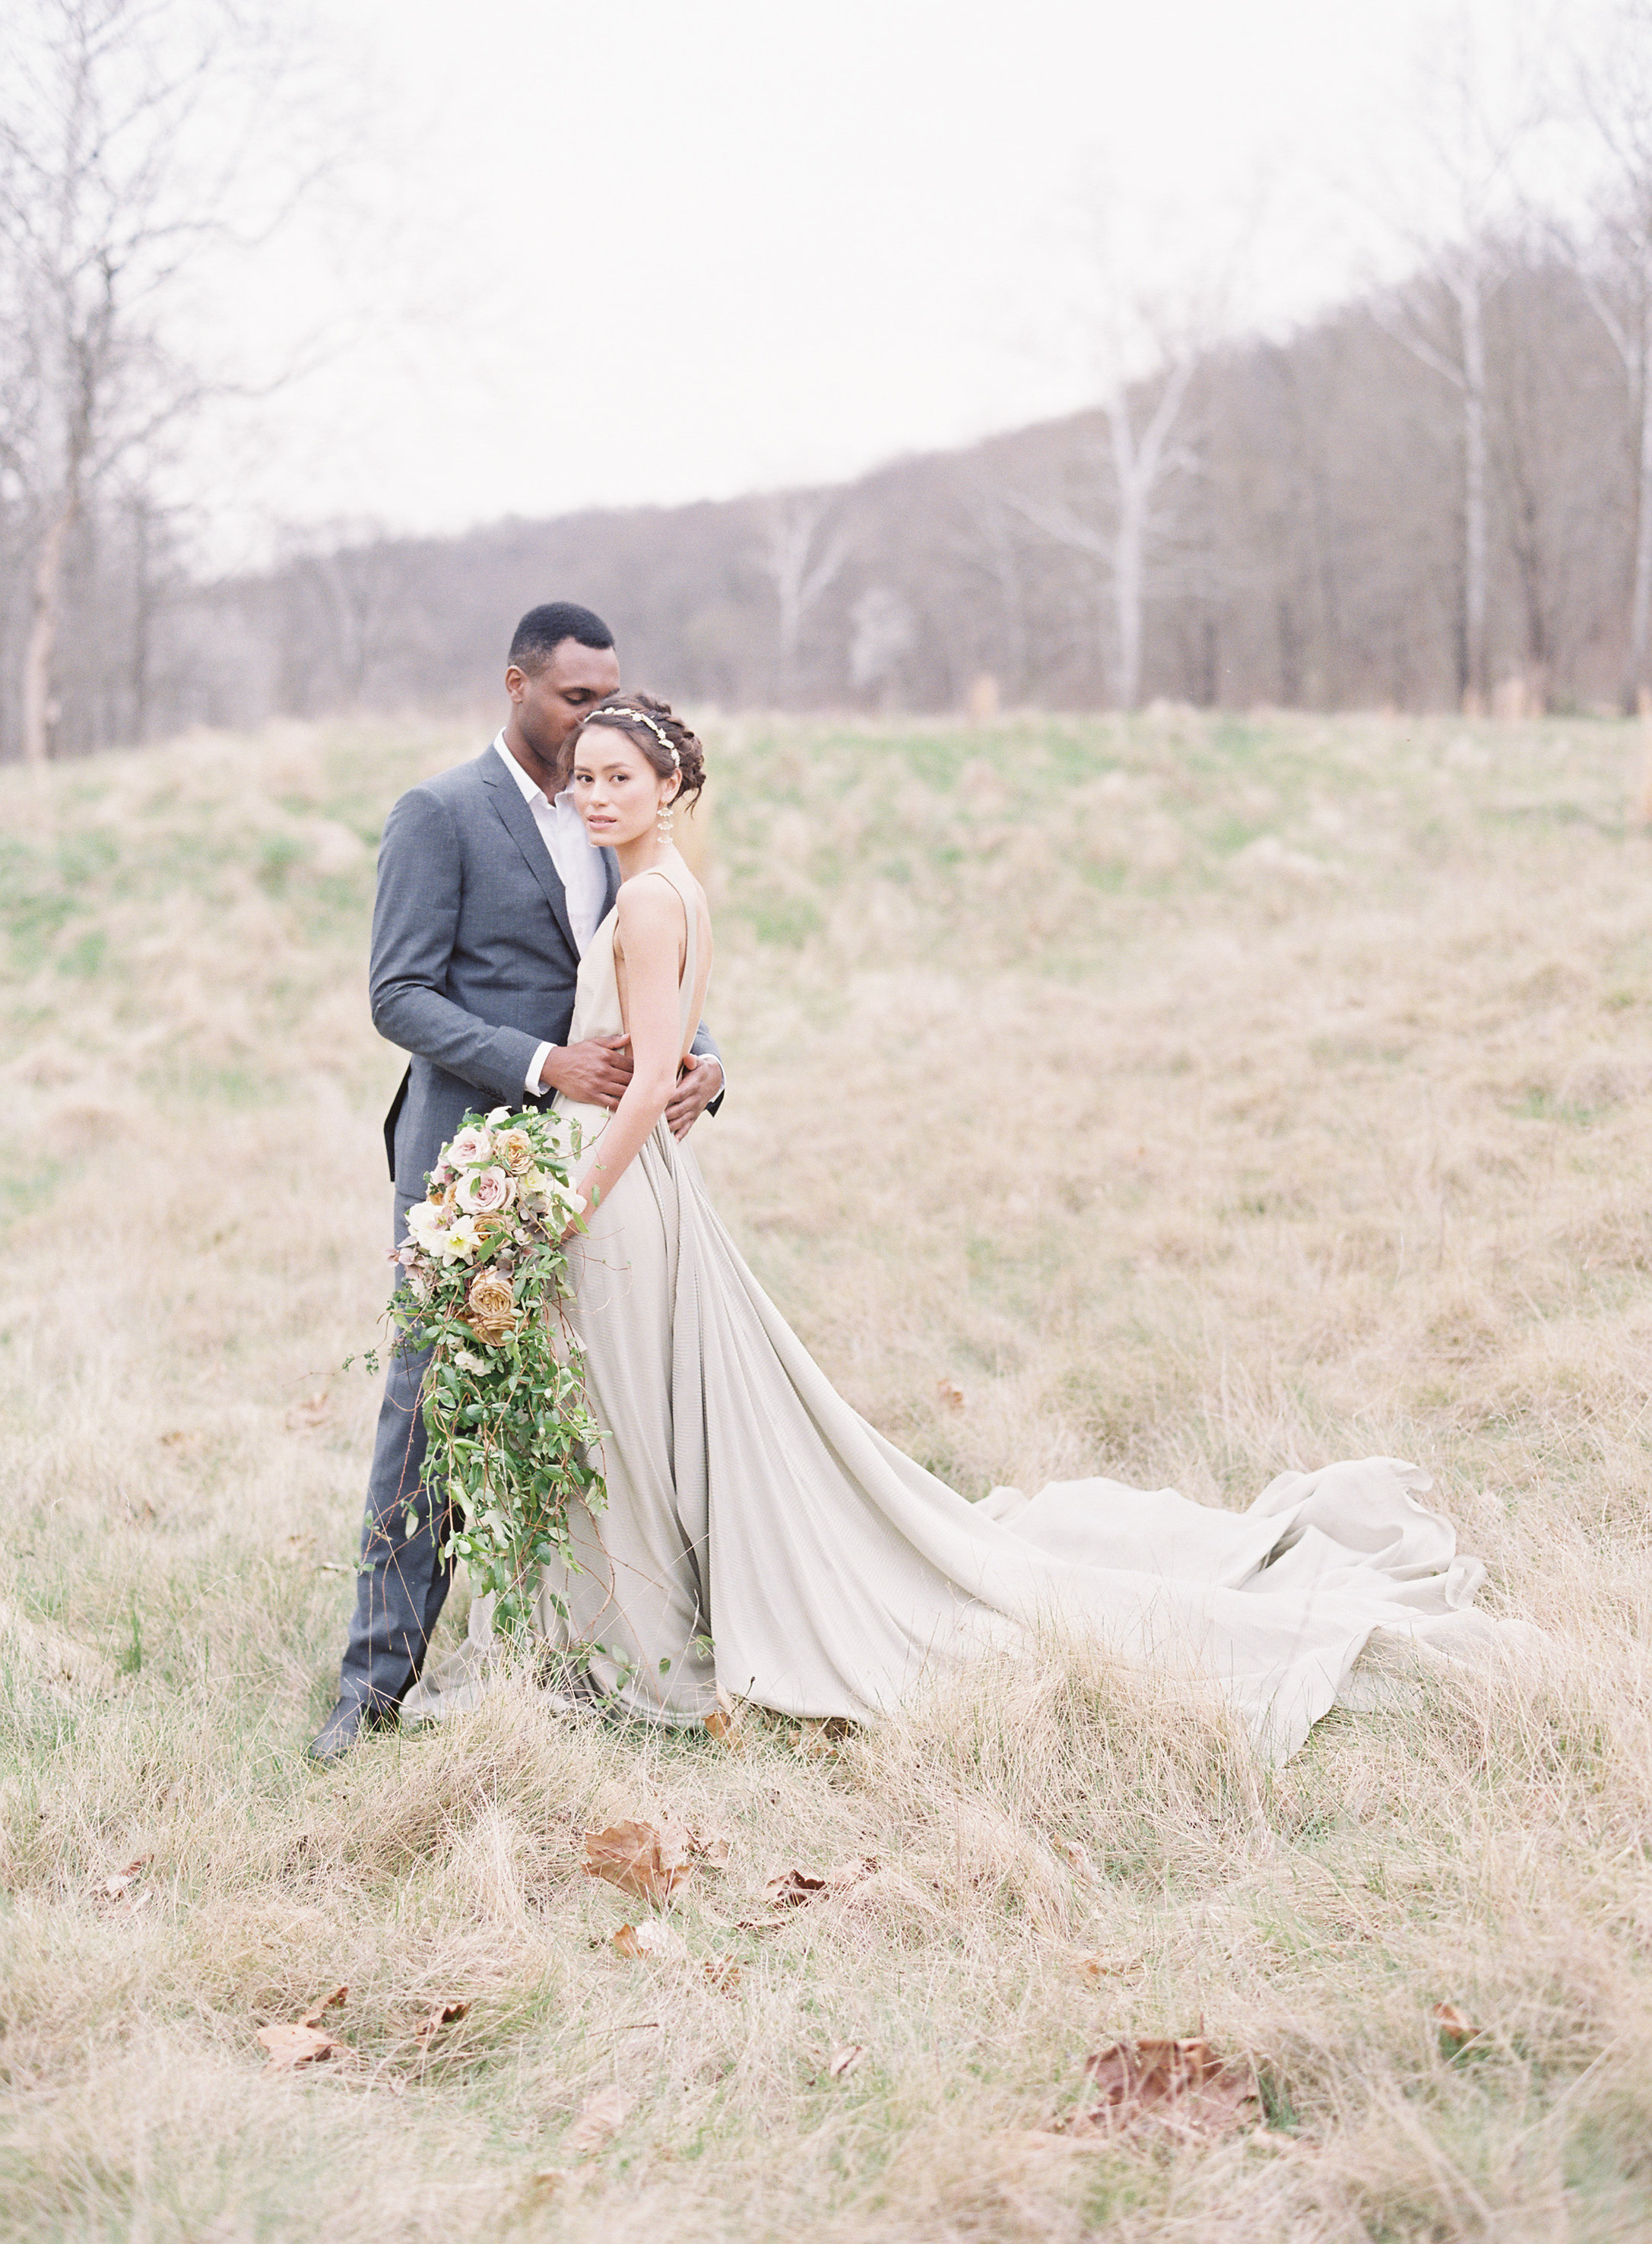 Fine Art Destination Wedding Planner East Made Event Company stylist for film photography workshop by Michael and Carina-0012.jpg